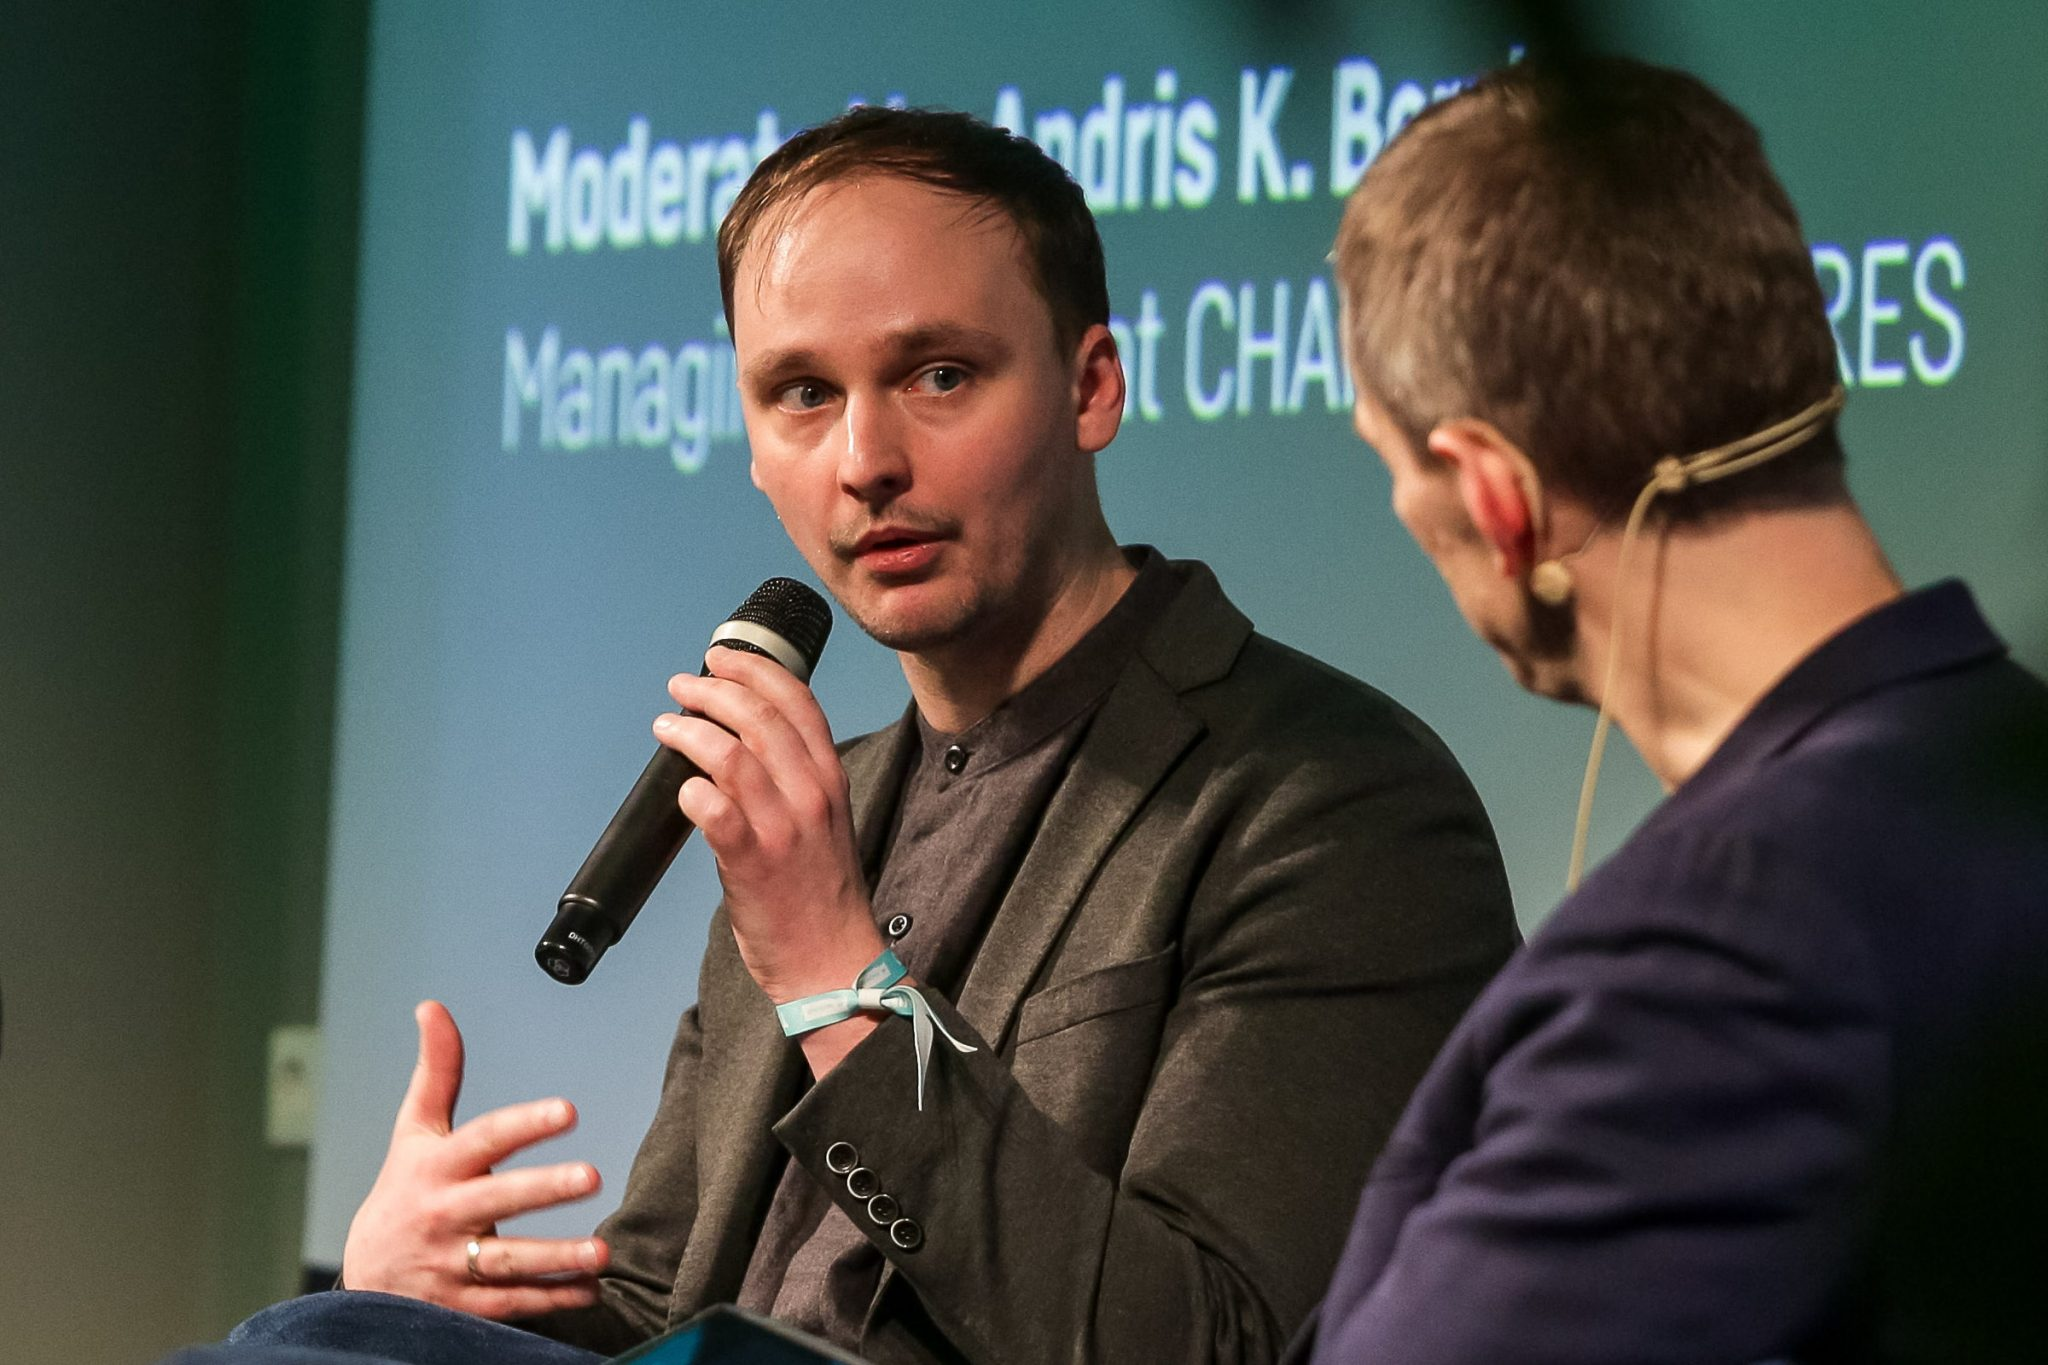 Nordigen cofounder and MD Rolands Mesters speaking at TechChill 2019. Credit: Lauris Vīksne.